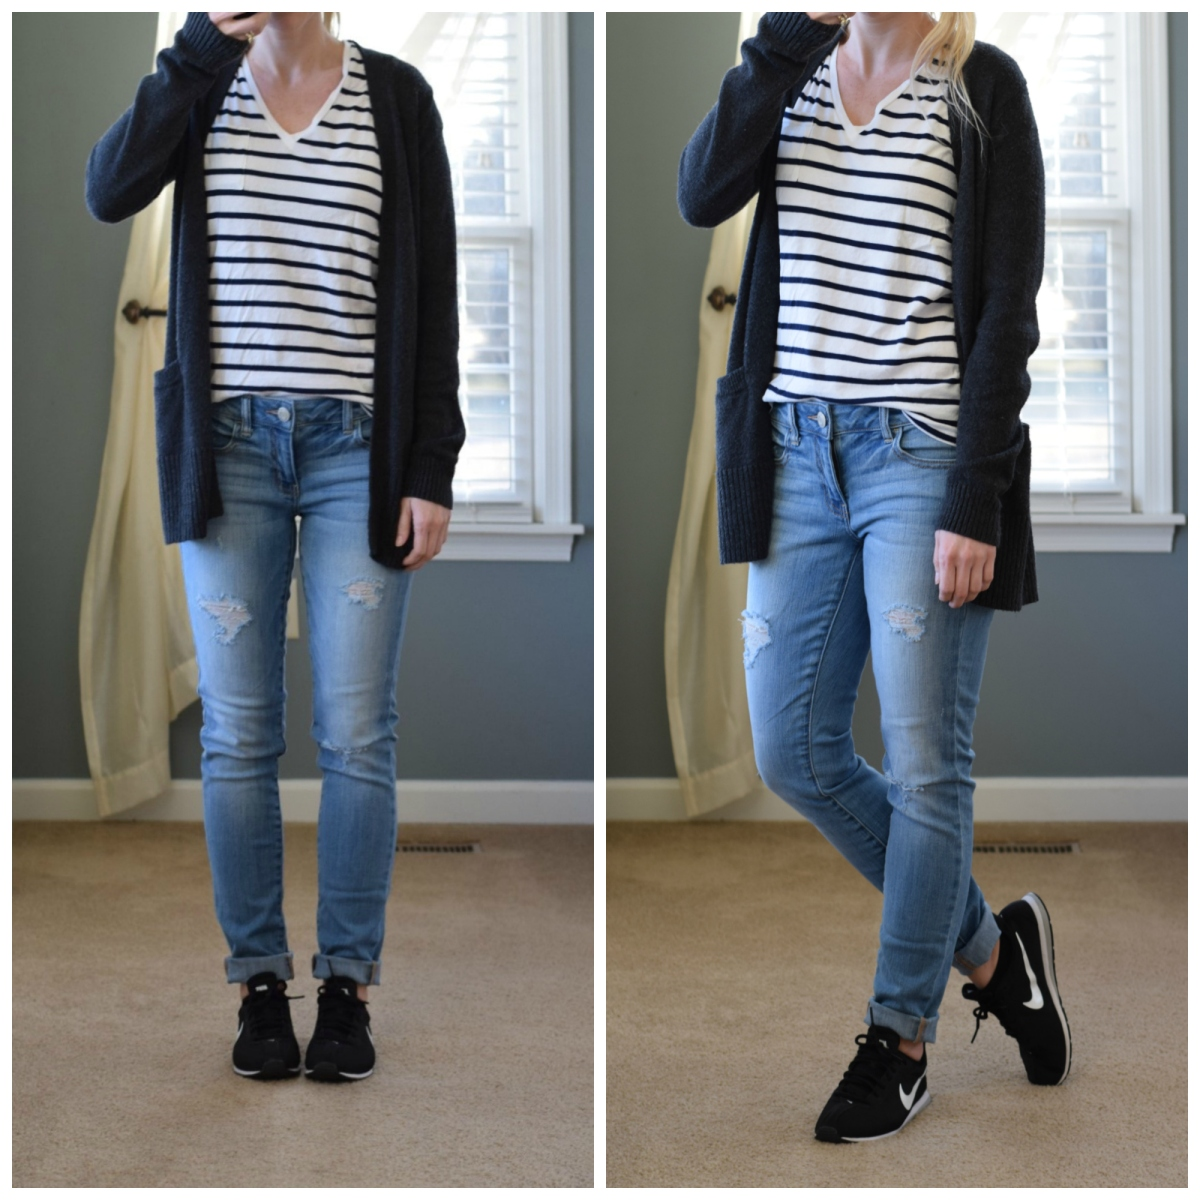 super casual and easy for errands